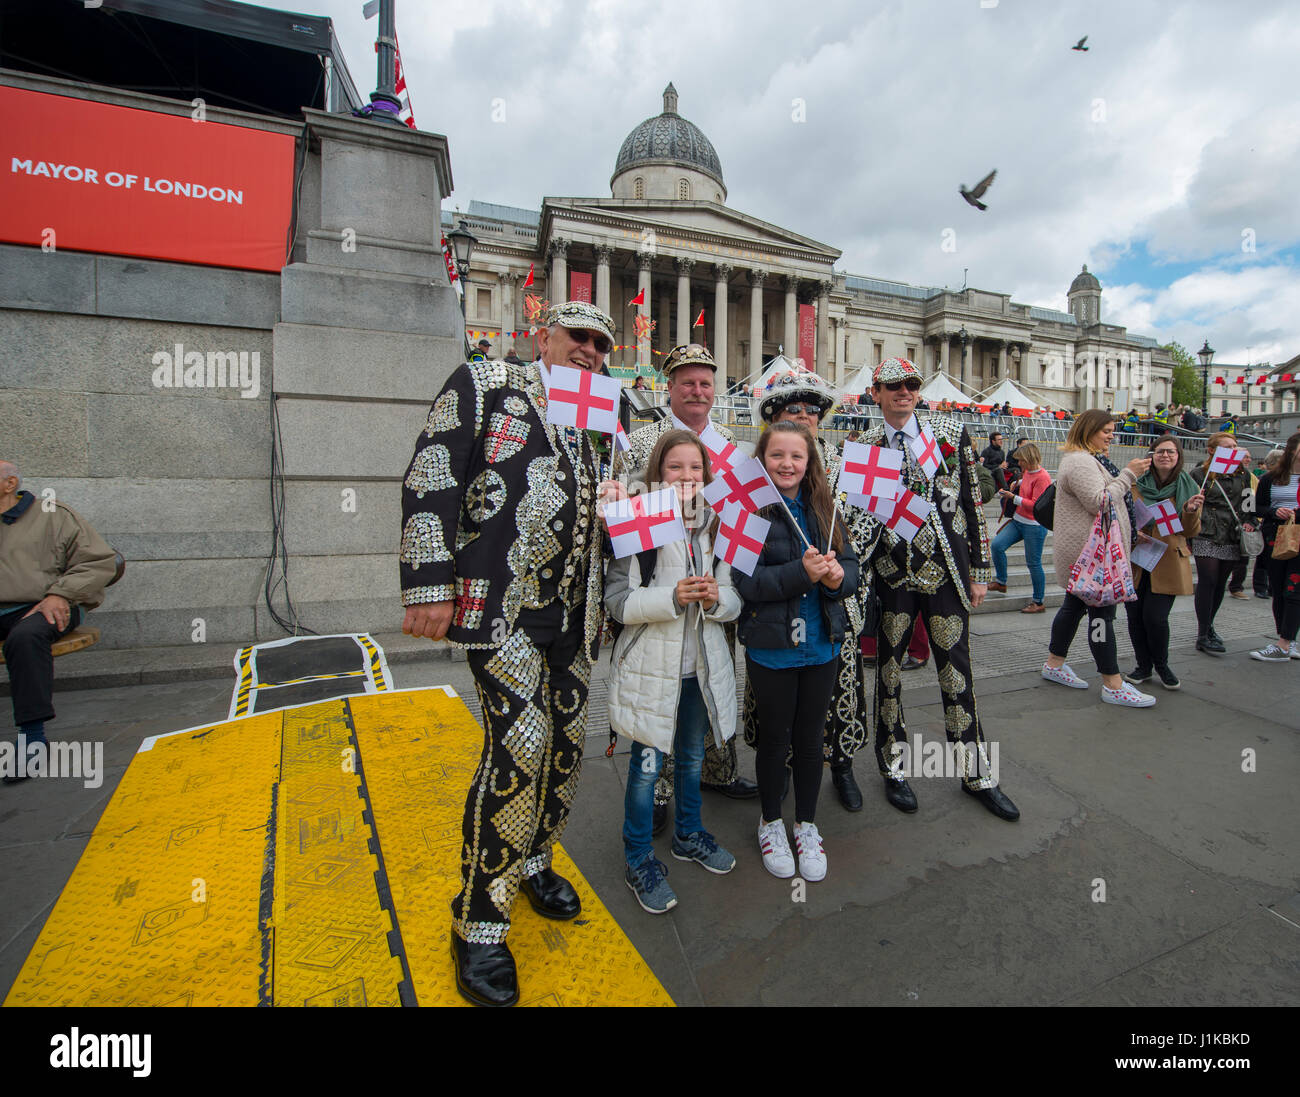 Trafalgar Square, London, UK. 22nd Apr, 2017. London celebrates St Georges Day at the Mayor of London's annual - Stock Image